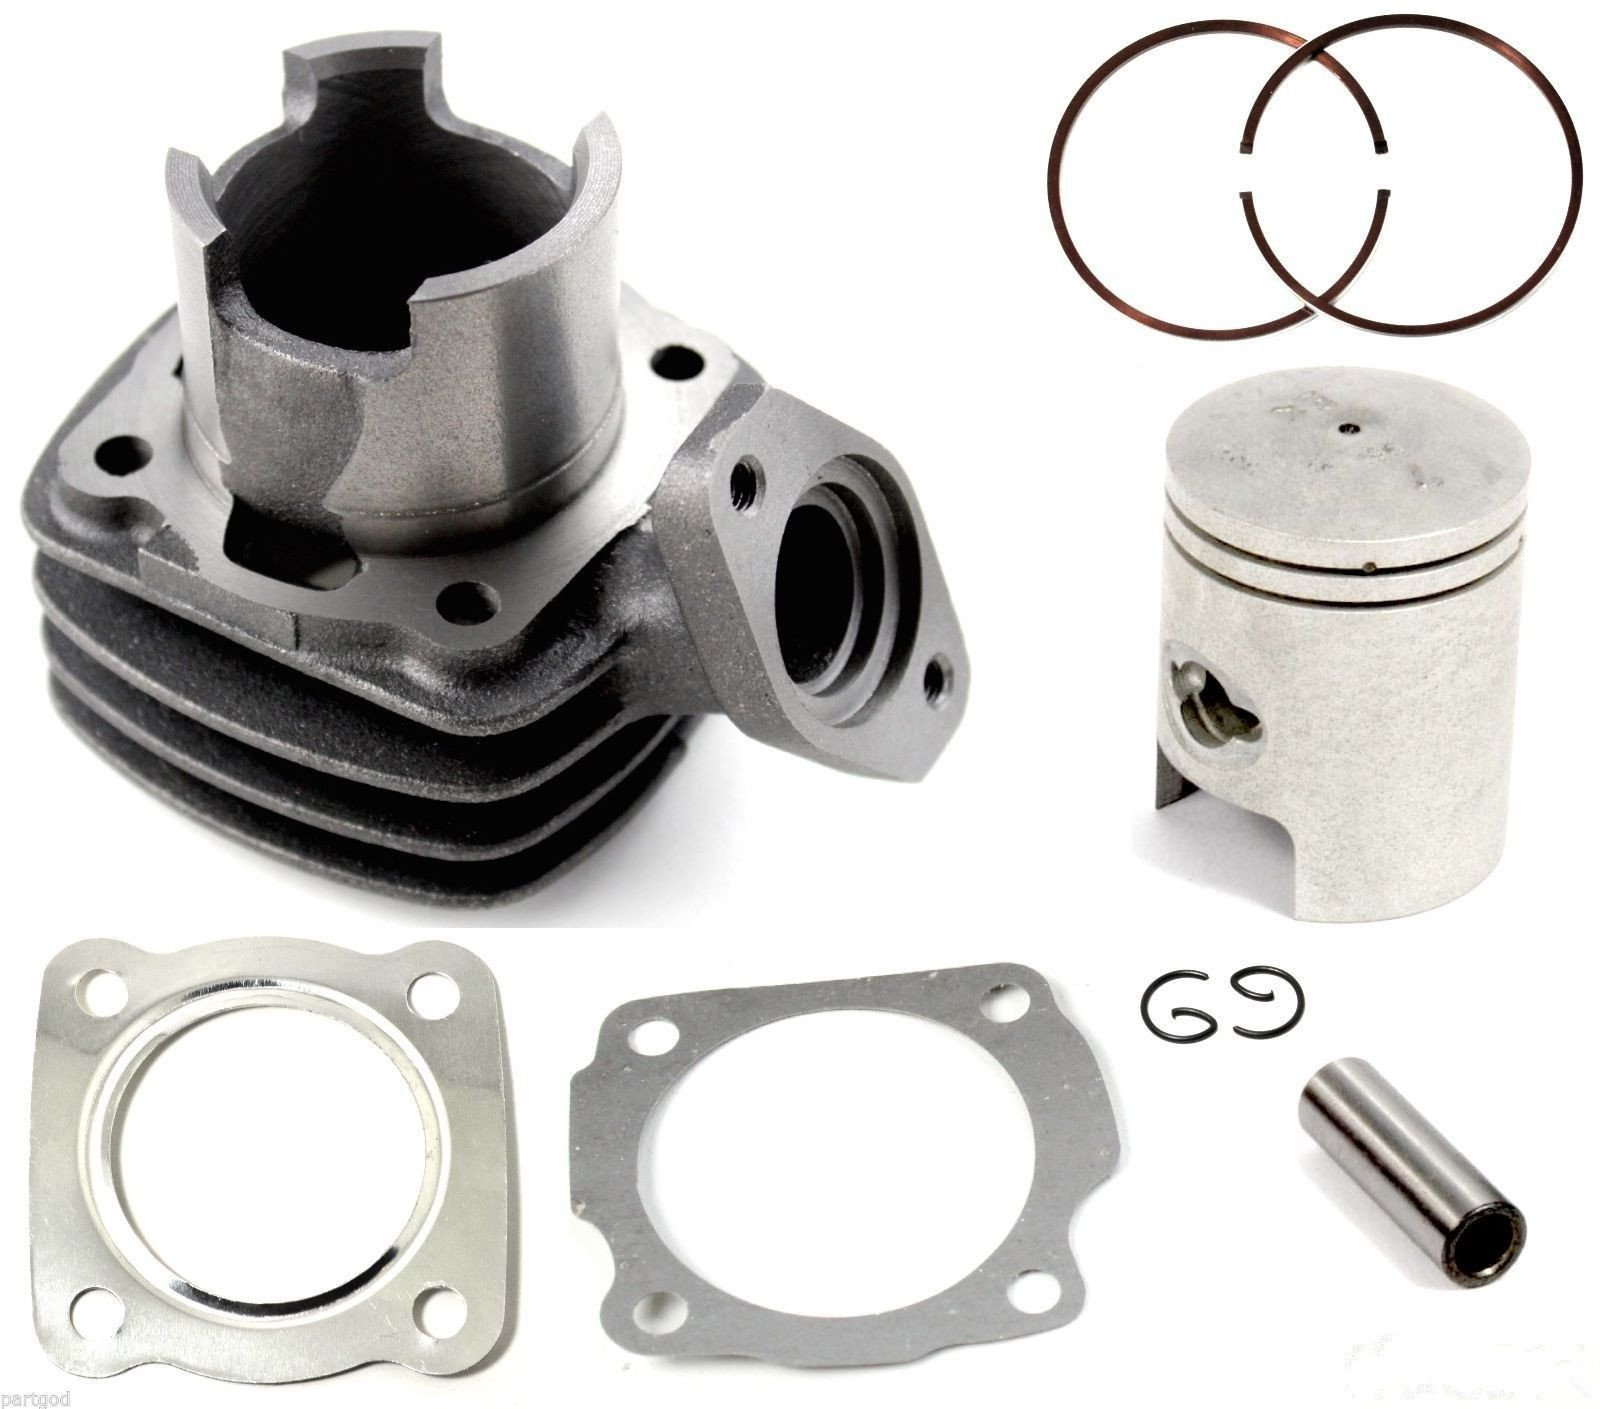 Cylinder Piston Ring Gasket Assembly Kit for 1984-1987 Honda Spree NQ50 Scooter by Anfu